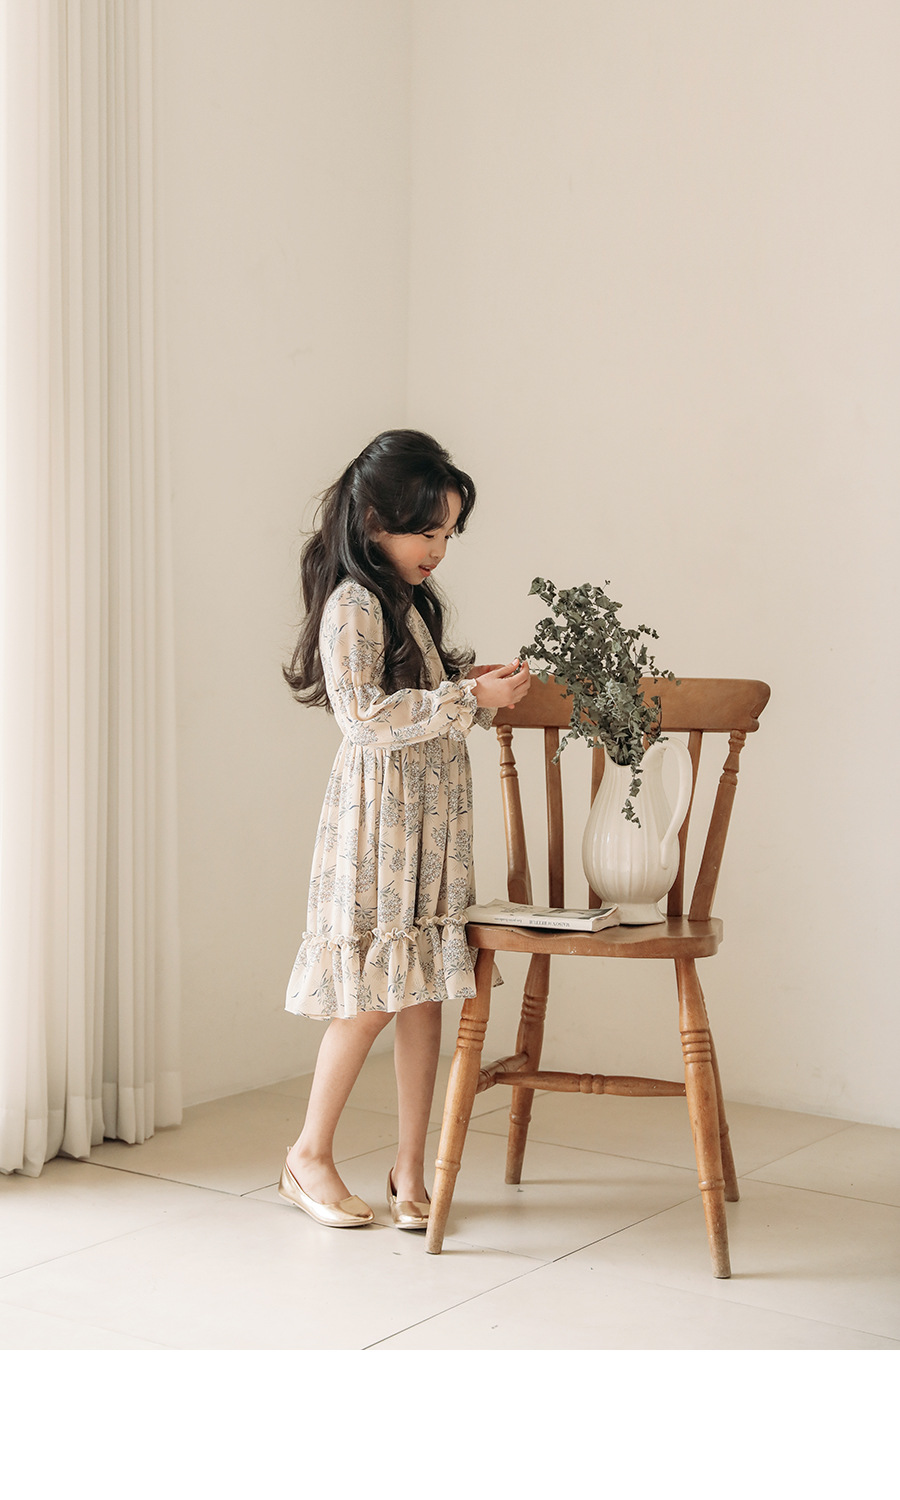 chiffon floral pattern dresses for girls of 12 10 11 14 2 4 6 years old High Quality children dresses 8 year long sleeve clothes 5 7 9 13 15 16 Years little teenage girls spring dresses for girls children girl spring dress (10)